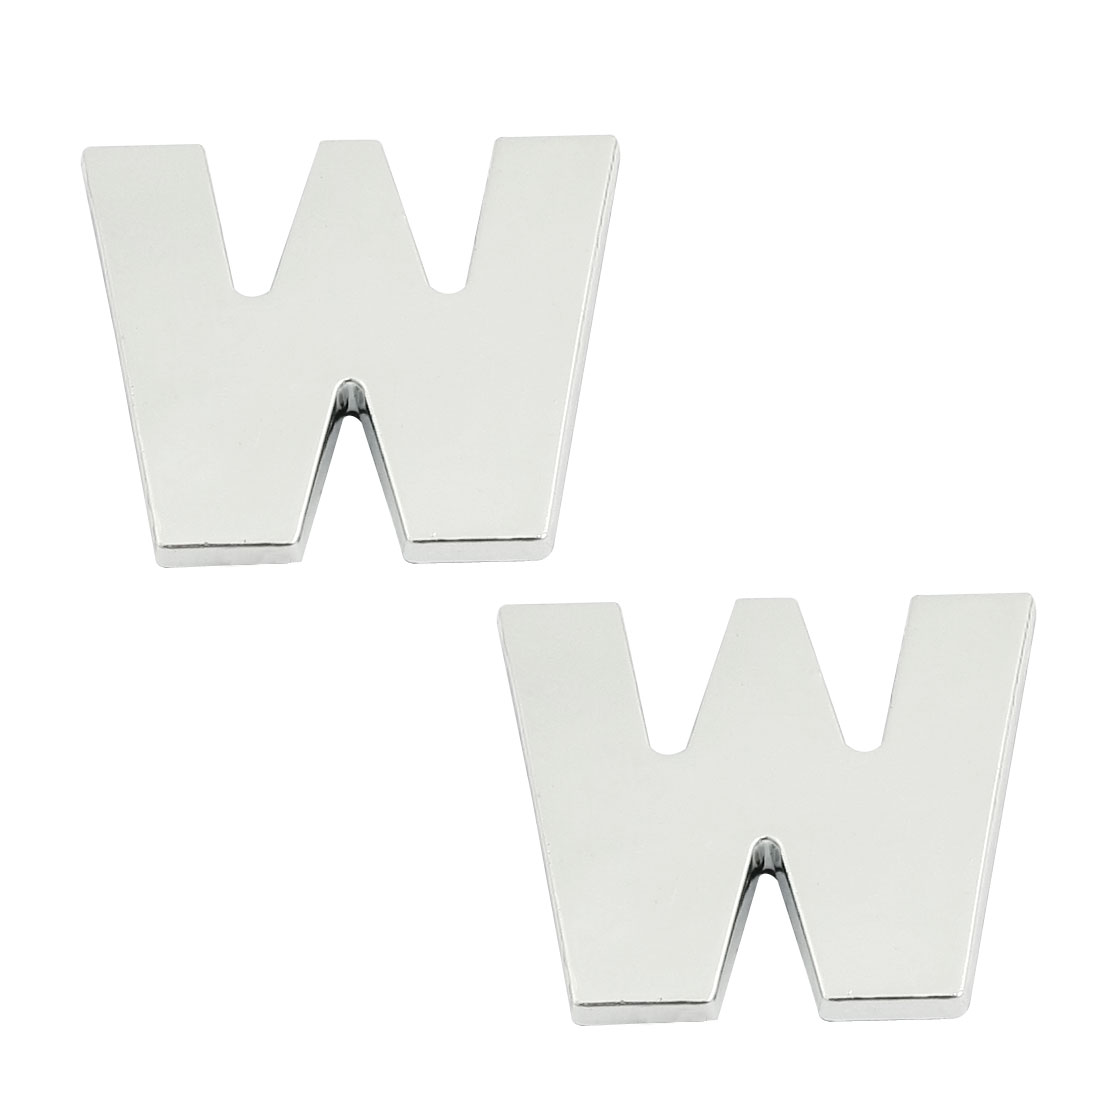 2 Pcs Adhesive Letter W Car Vehicle 3D Emblem Badge Ornament Silver Tone